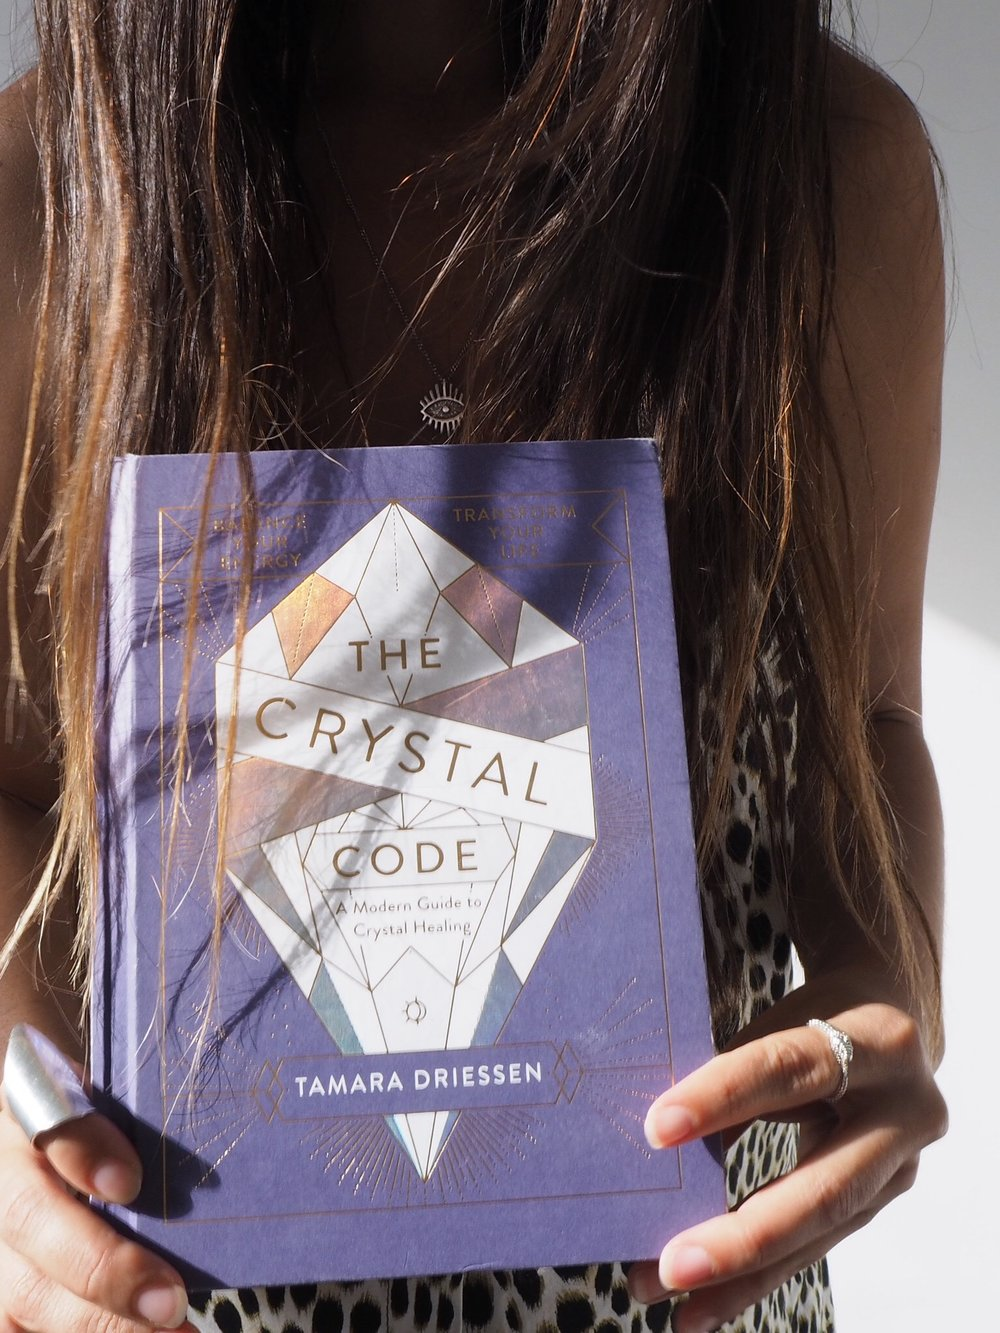 the crystal code - A modern guide to crystal healing; including 70 unique beauties that want to rock your world. Dust off your crystals and transform your life with a little help from The Crystal Code.Available now